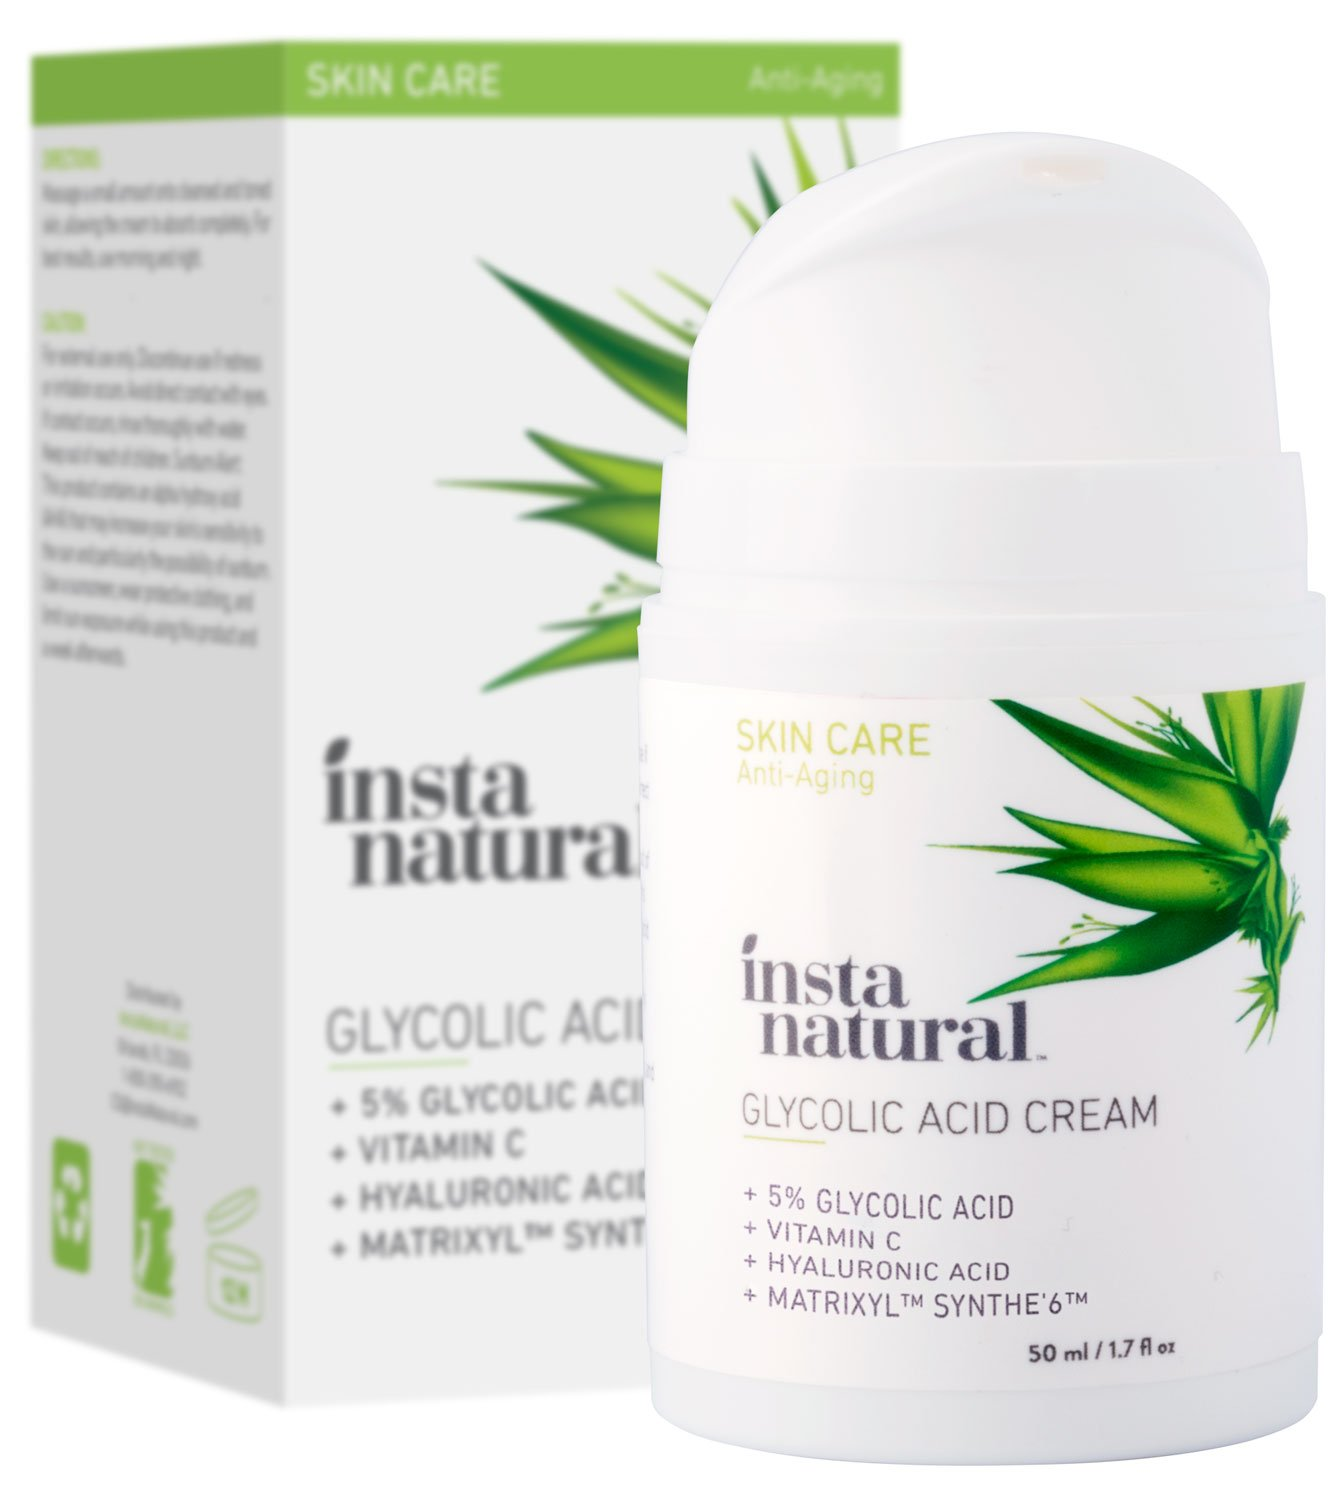 Insta Natural Glycolic Acid Cream